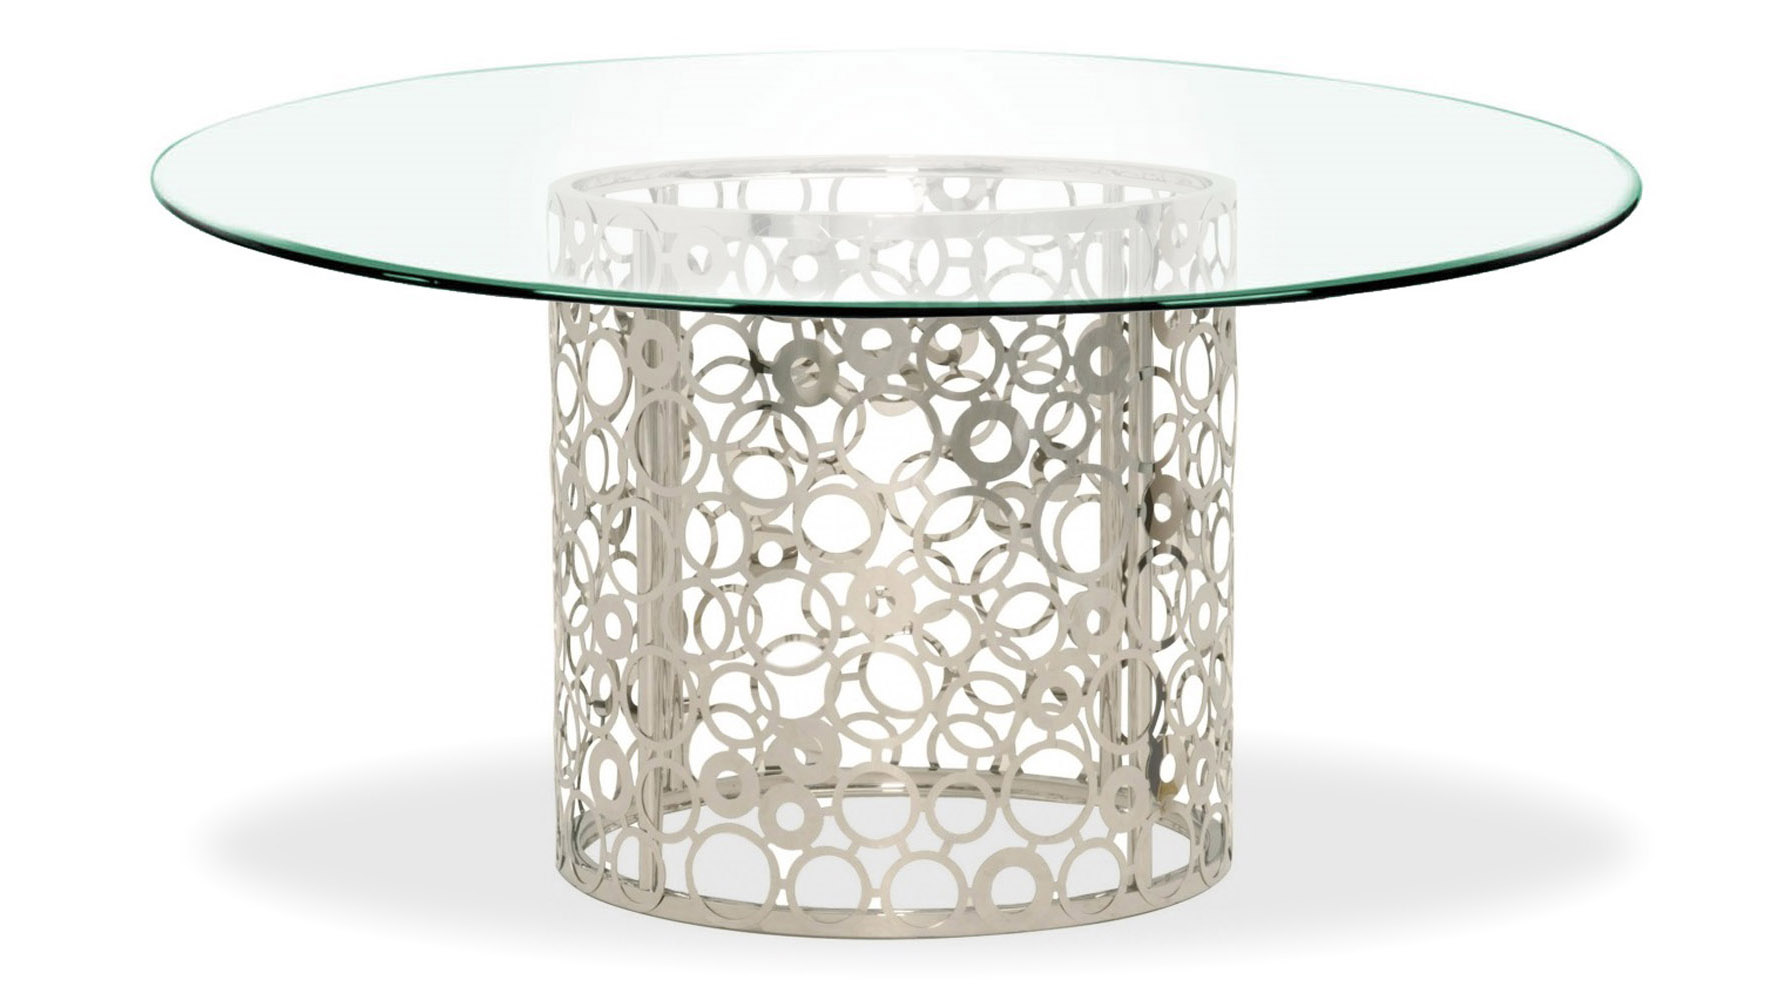 galileo inch clear glass dining table zuri furniture modern round stainless steel base threshold accent mouse over zoom click view larger giant patio umbrella drum coffee white